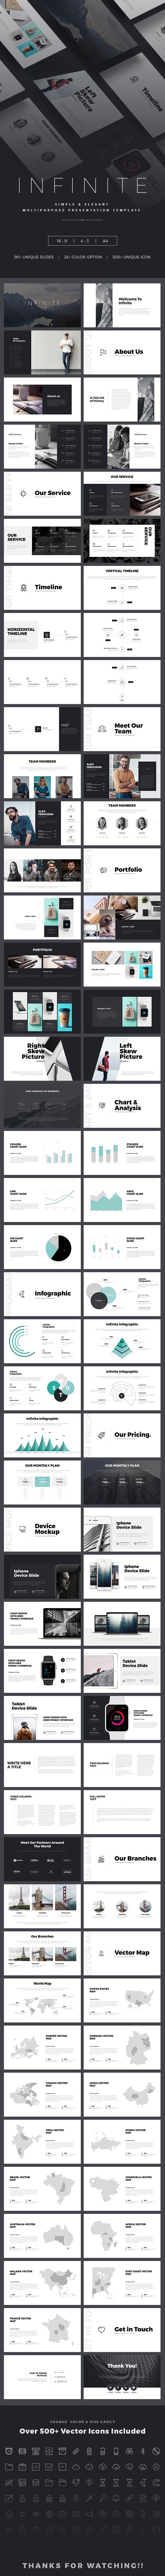 Infinite Powerpoint — Powerpoint PPTX #corporate presentation #analytical presentation • Download ➝ https://graphicriver.net/item/infinite-powerpoint/19128622?ref=pxcr